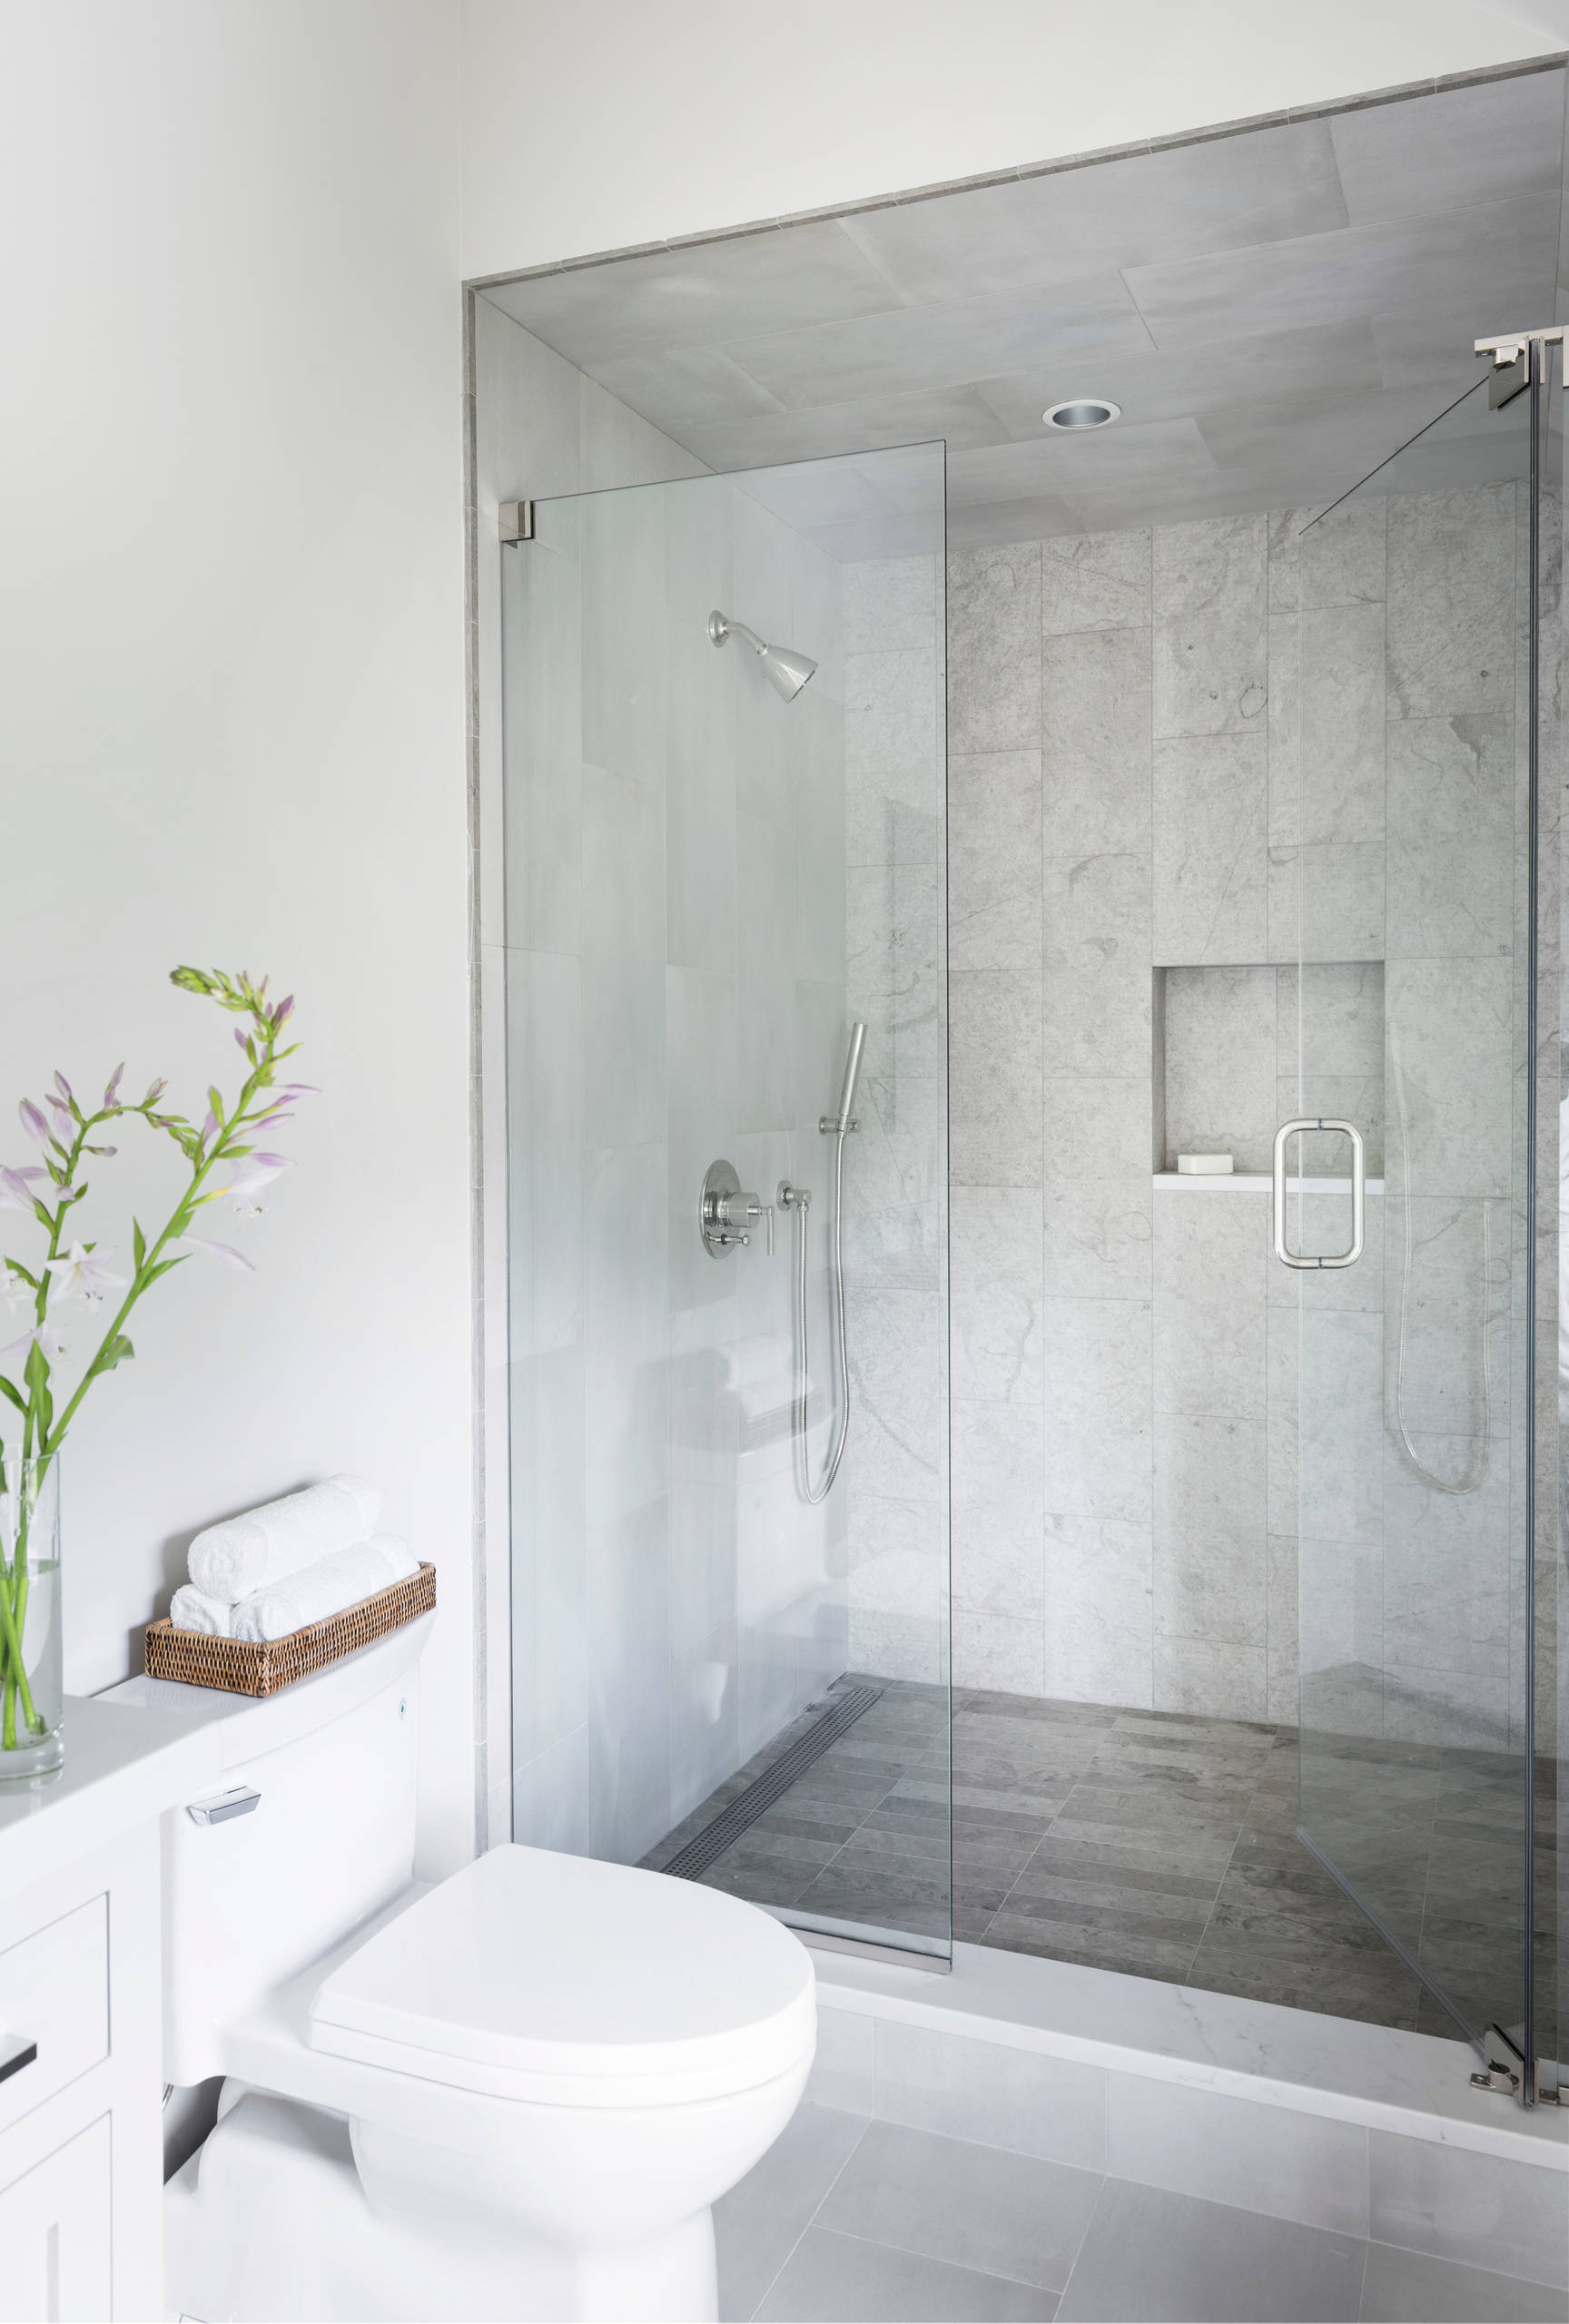 75 Beautiful Small Modern Bathroom Pictures Ideas March 2021 Houzz